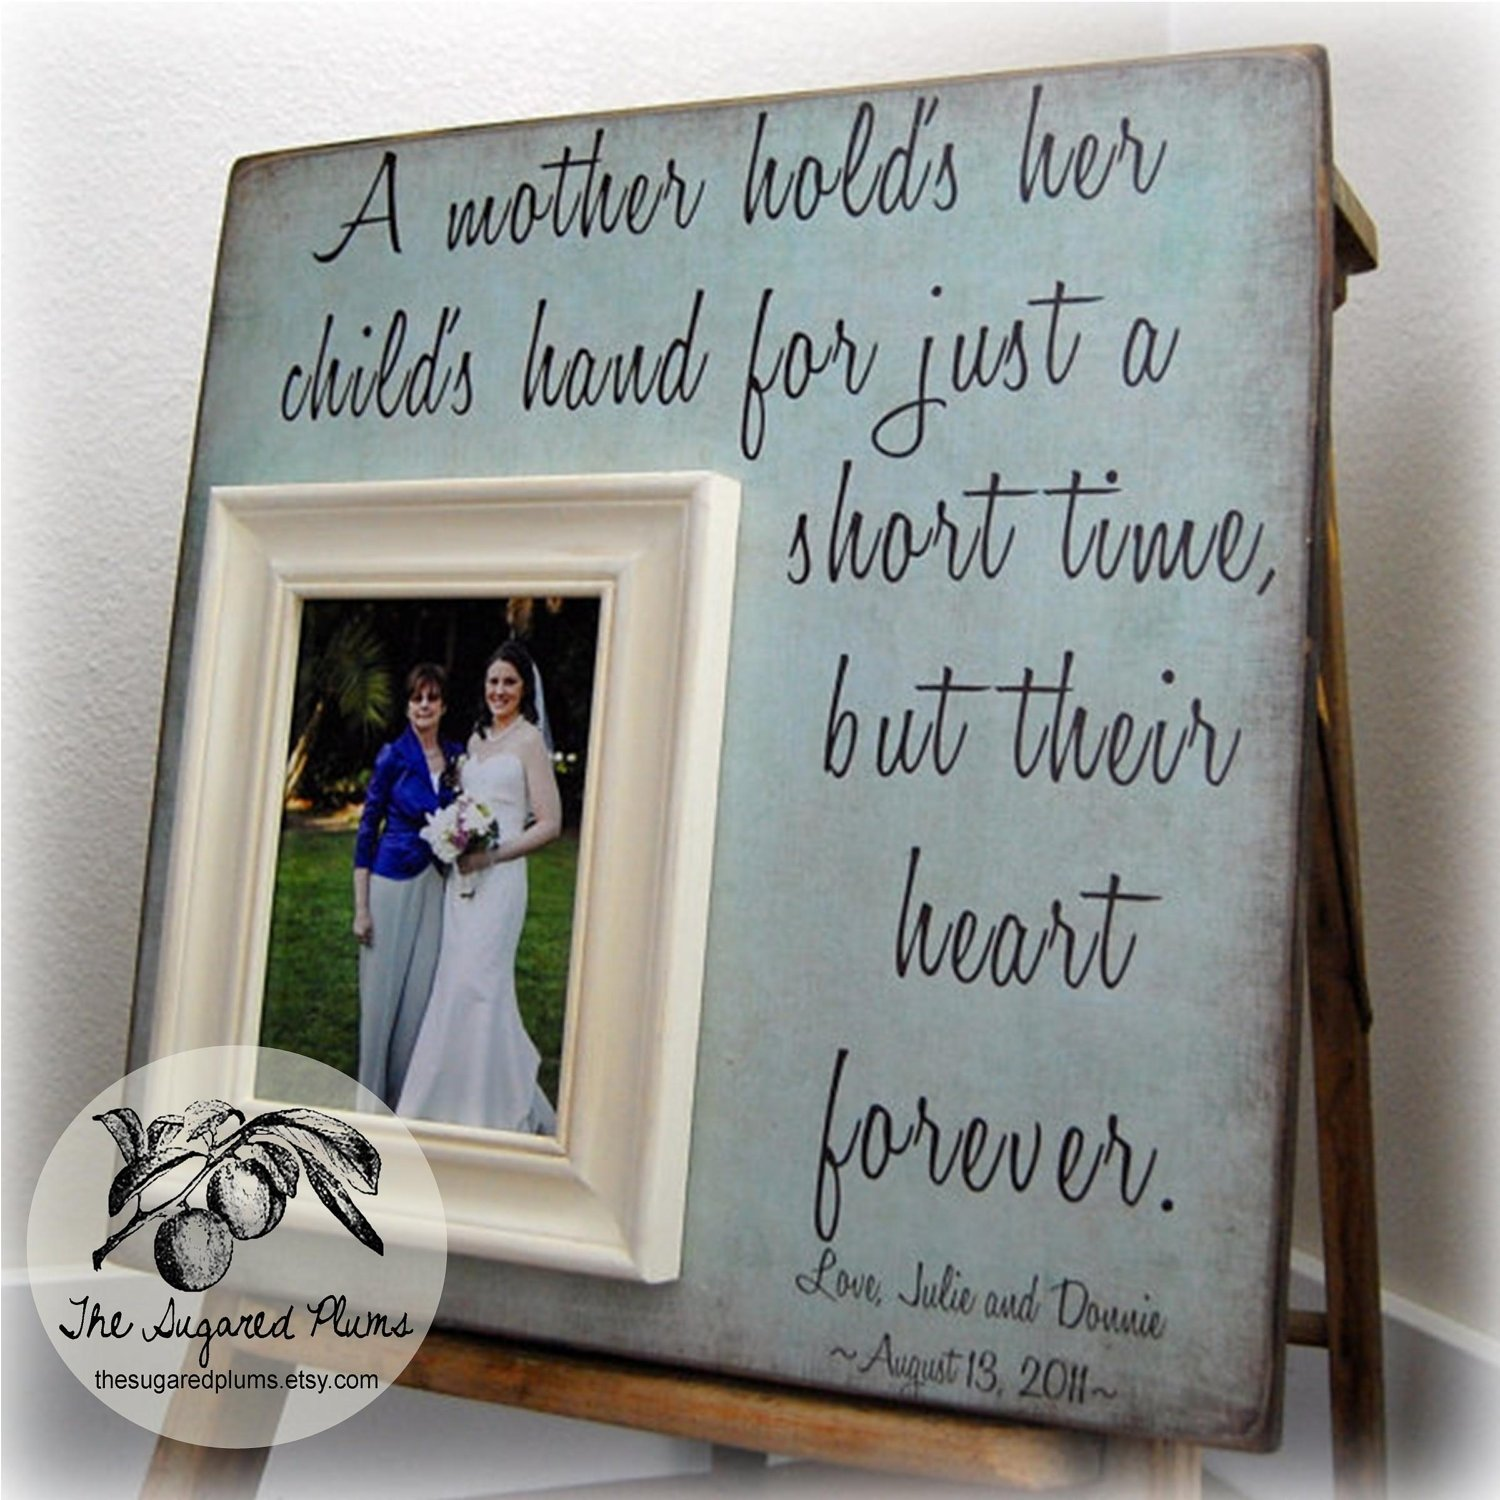 10 Awesome Mother Of The Bride Gifts Ideas mother of the bride gift personalized picture frame a mother holds 1 2021